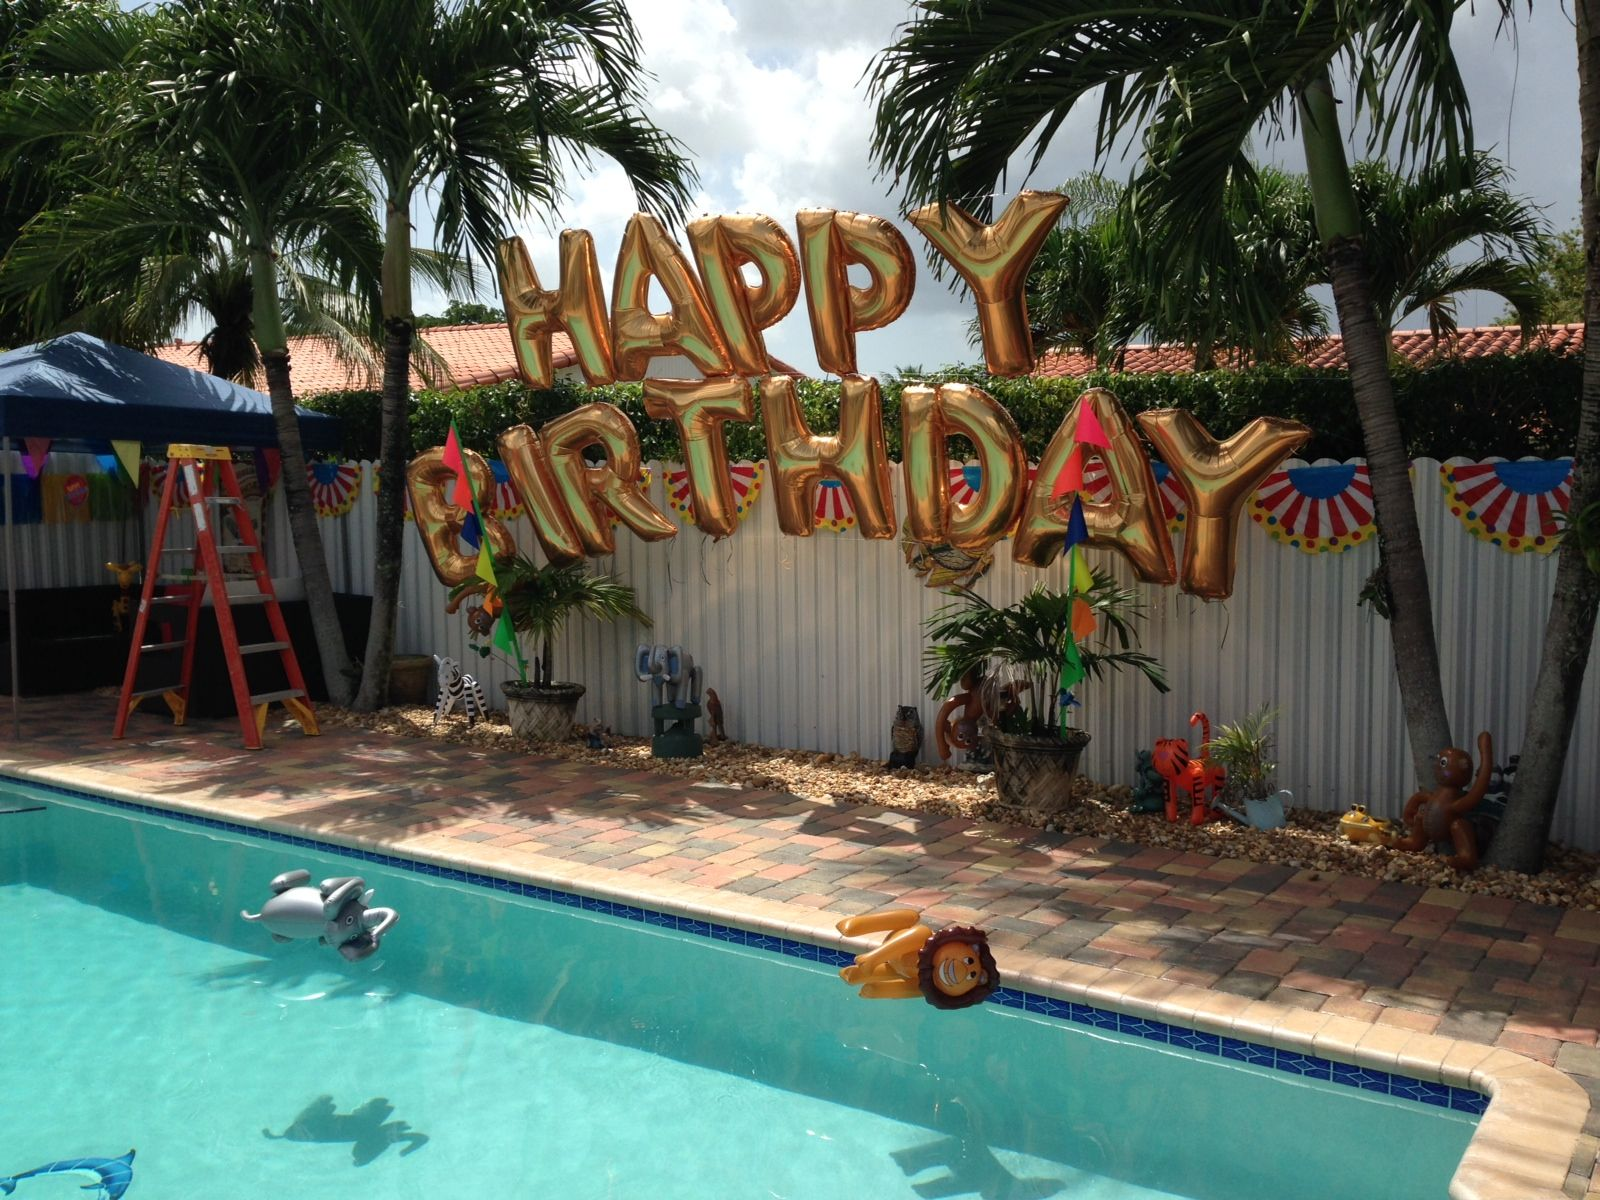 Swimming Pool Party Balloon Decoration Mylar Balloon Letters Happy Birthday Http Www